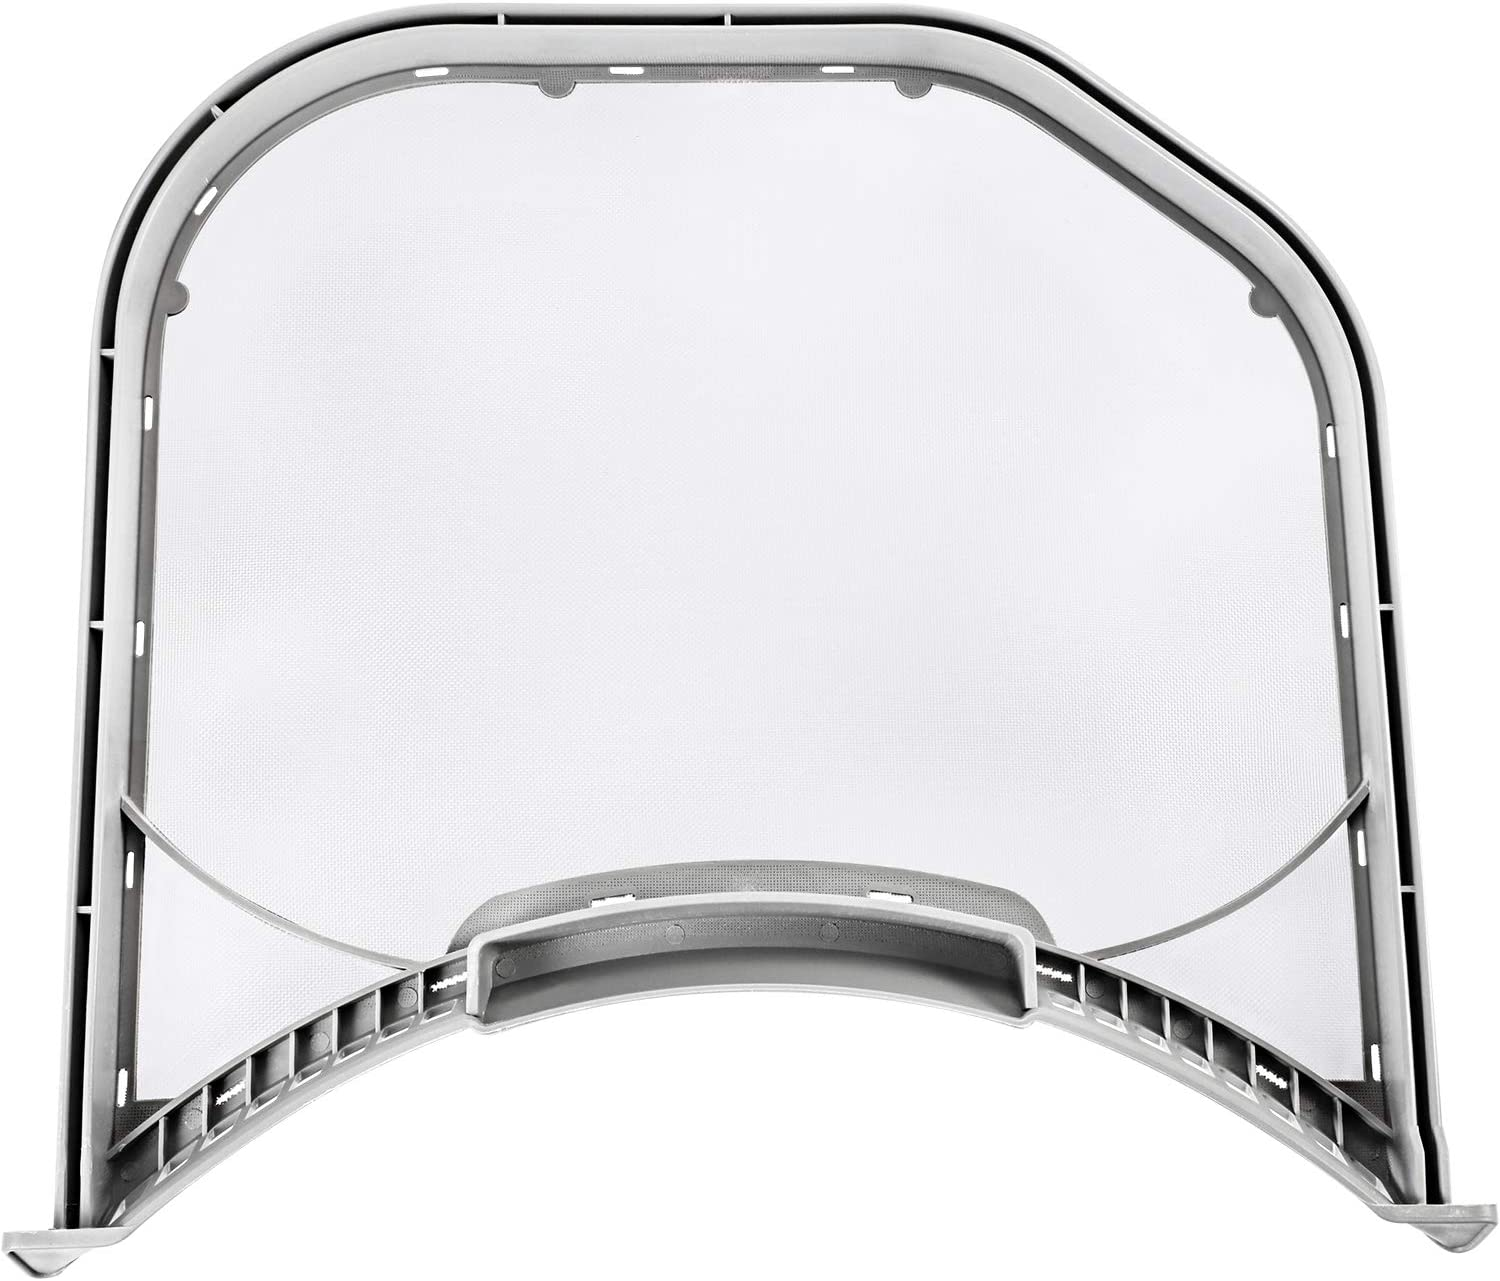 ADQ56656401 Dryer Lint Filter Assembly Compatible with LG Dryer Replaces AP4457244, 1462822, AH3531962, EA3531962, PS3531962